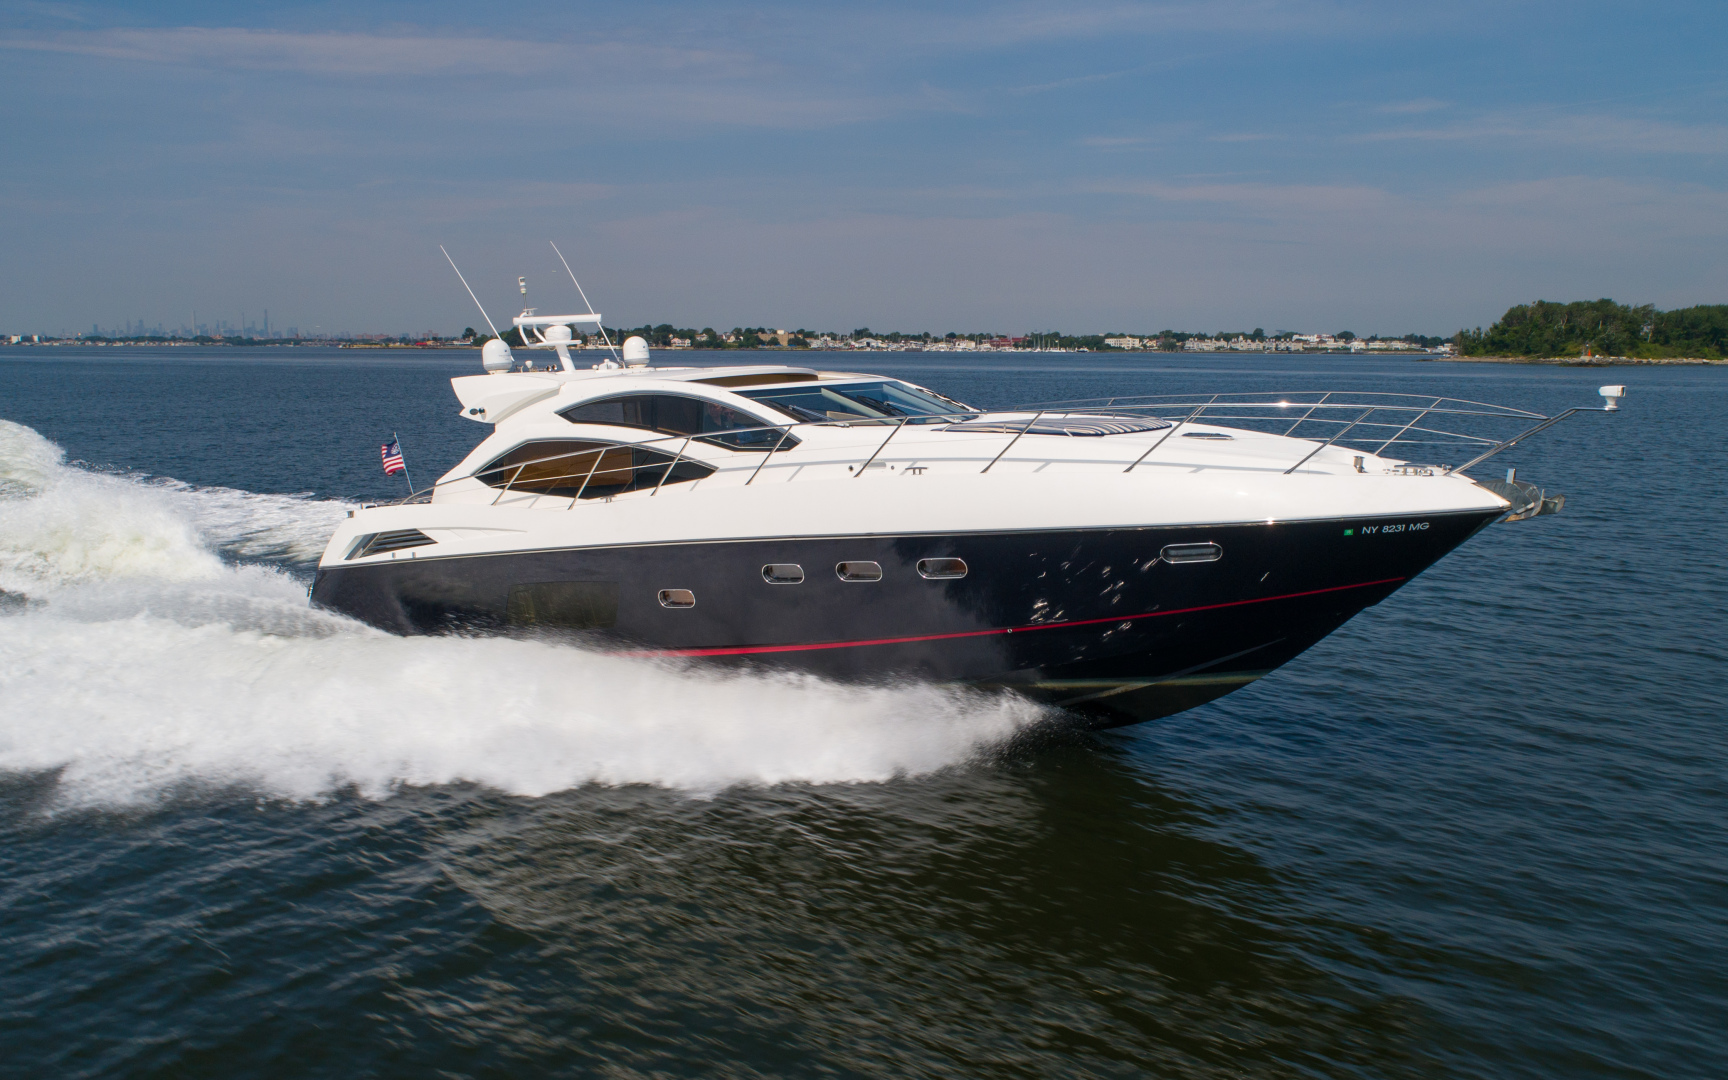 64 Sunseeker Profile Running